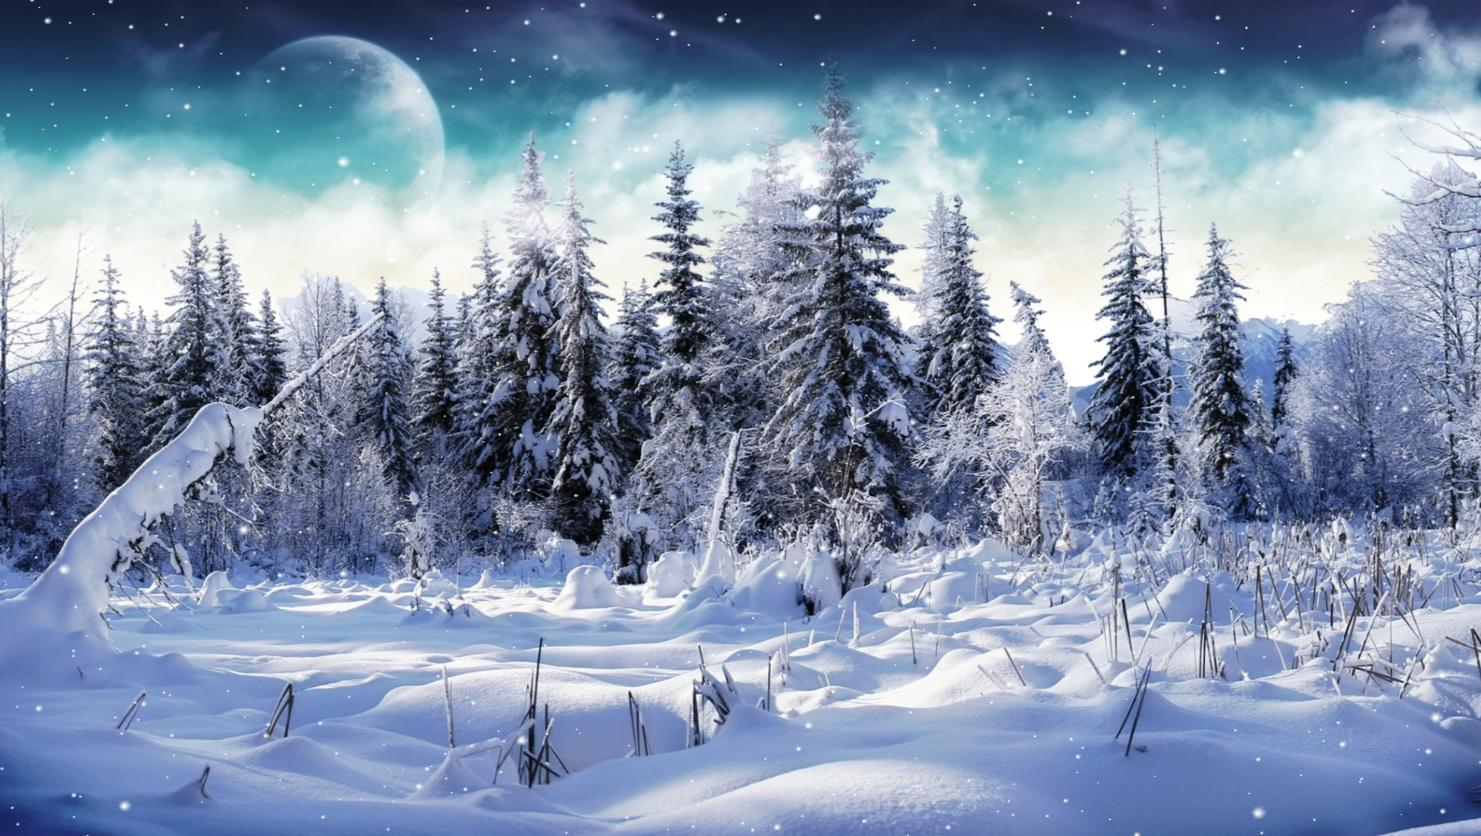 Winter Wallpaper Animated